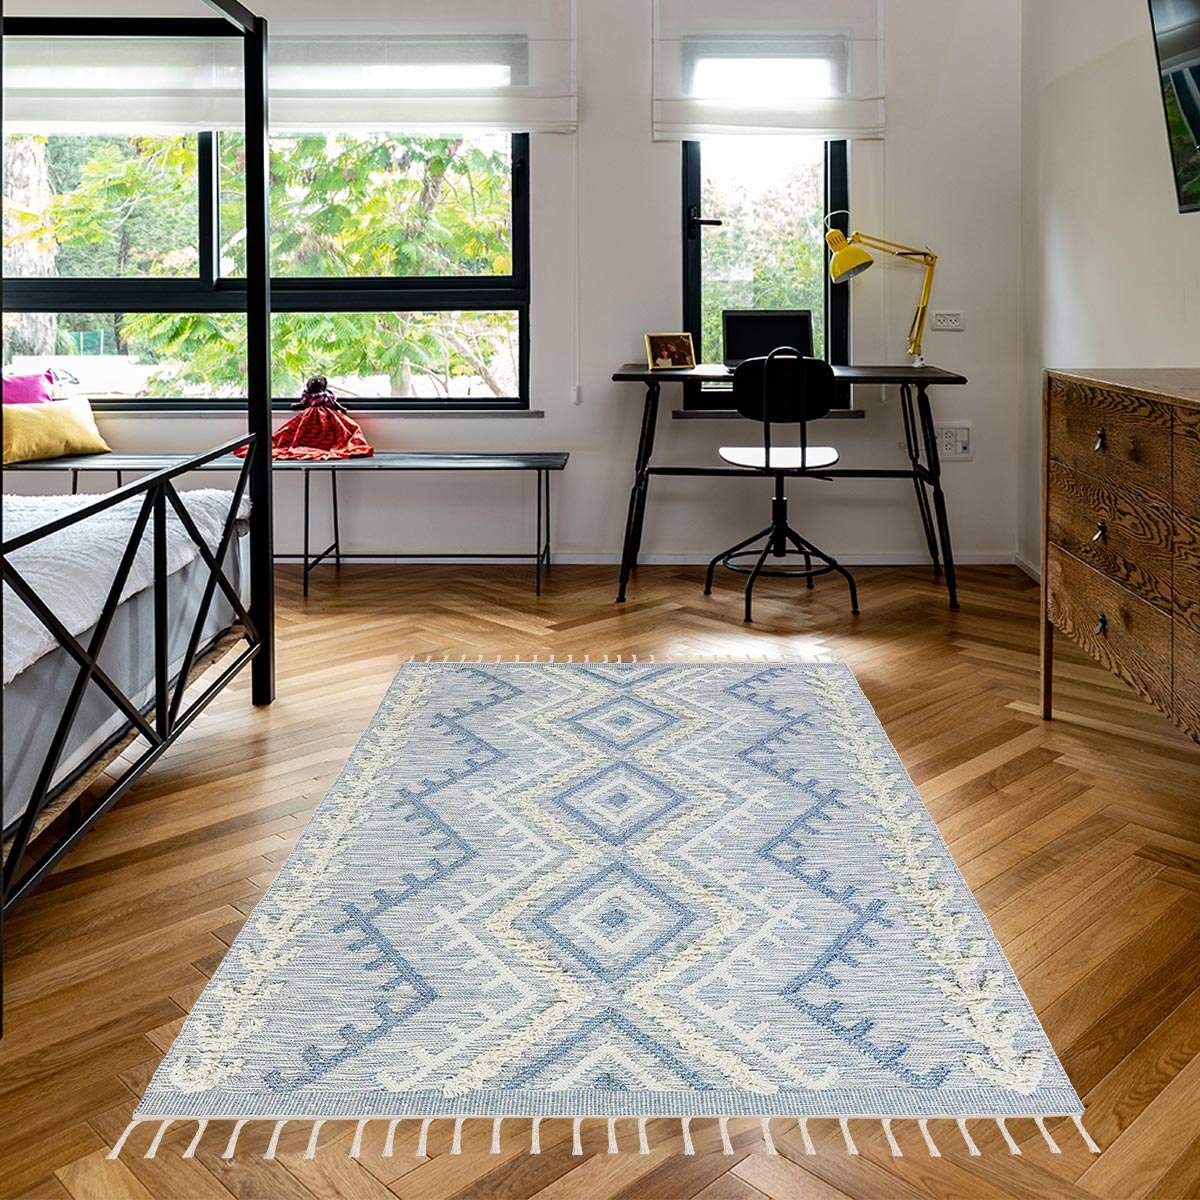 We Rugs Beautiful Area Rugs for Living Room Decor, Modern Geometric Handmade Area Rug,Soft Blue 5 x 8